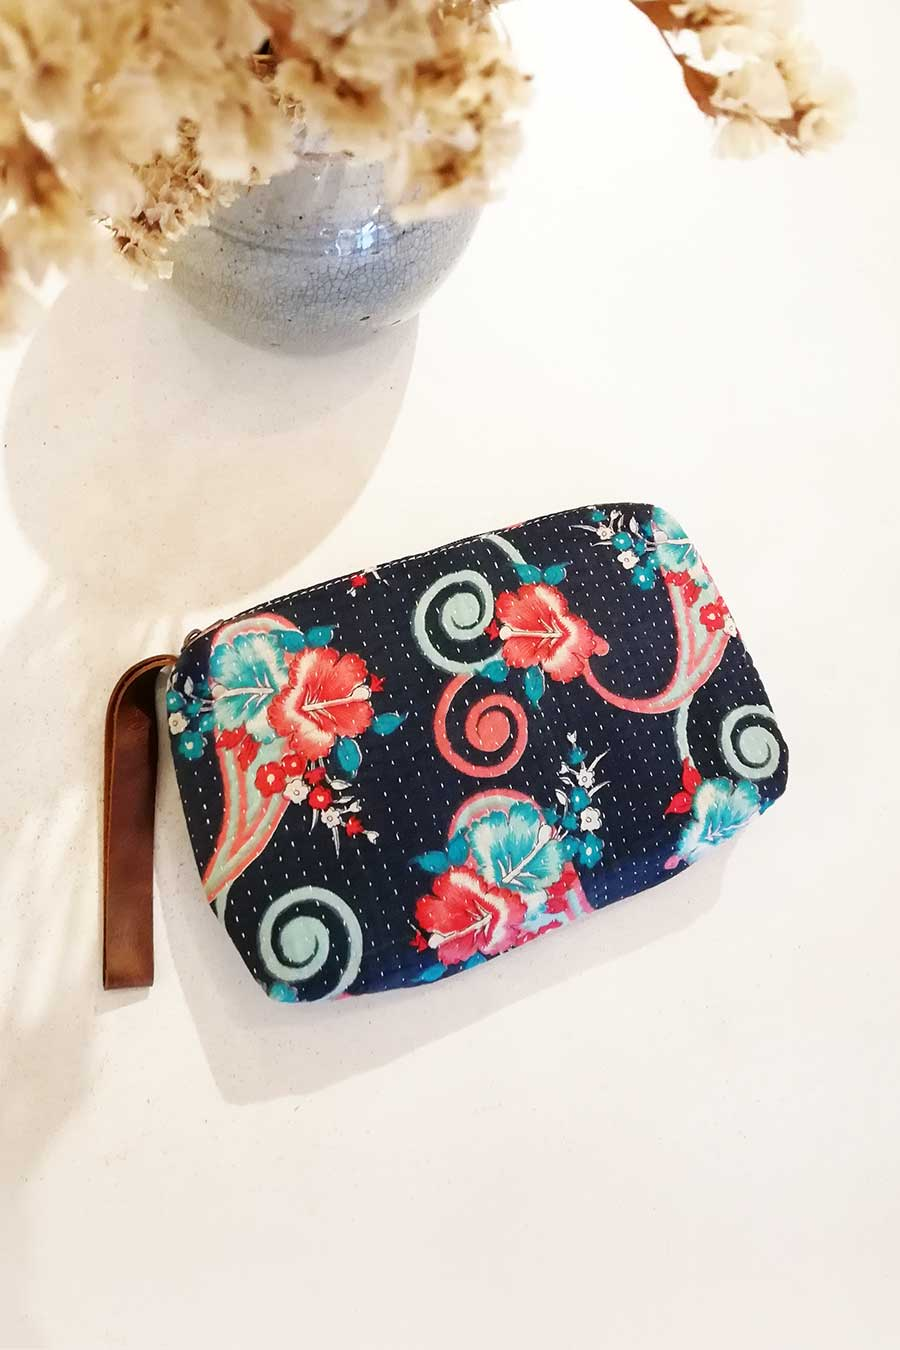 Floral Boho Clutch Bag with Zipper